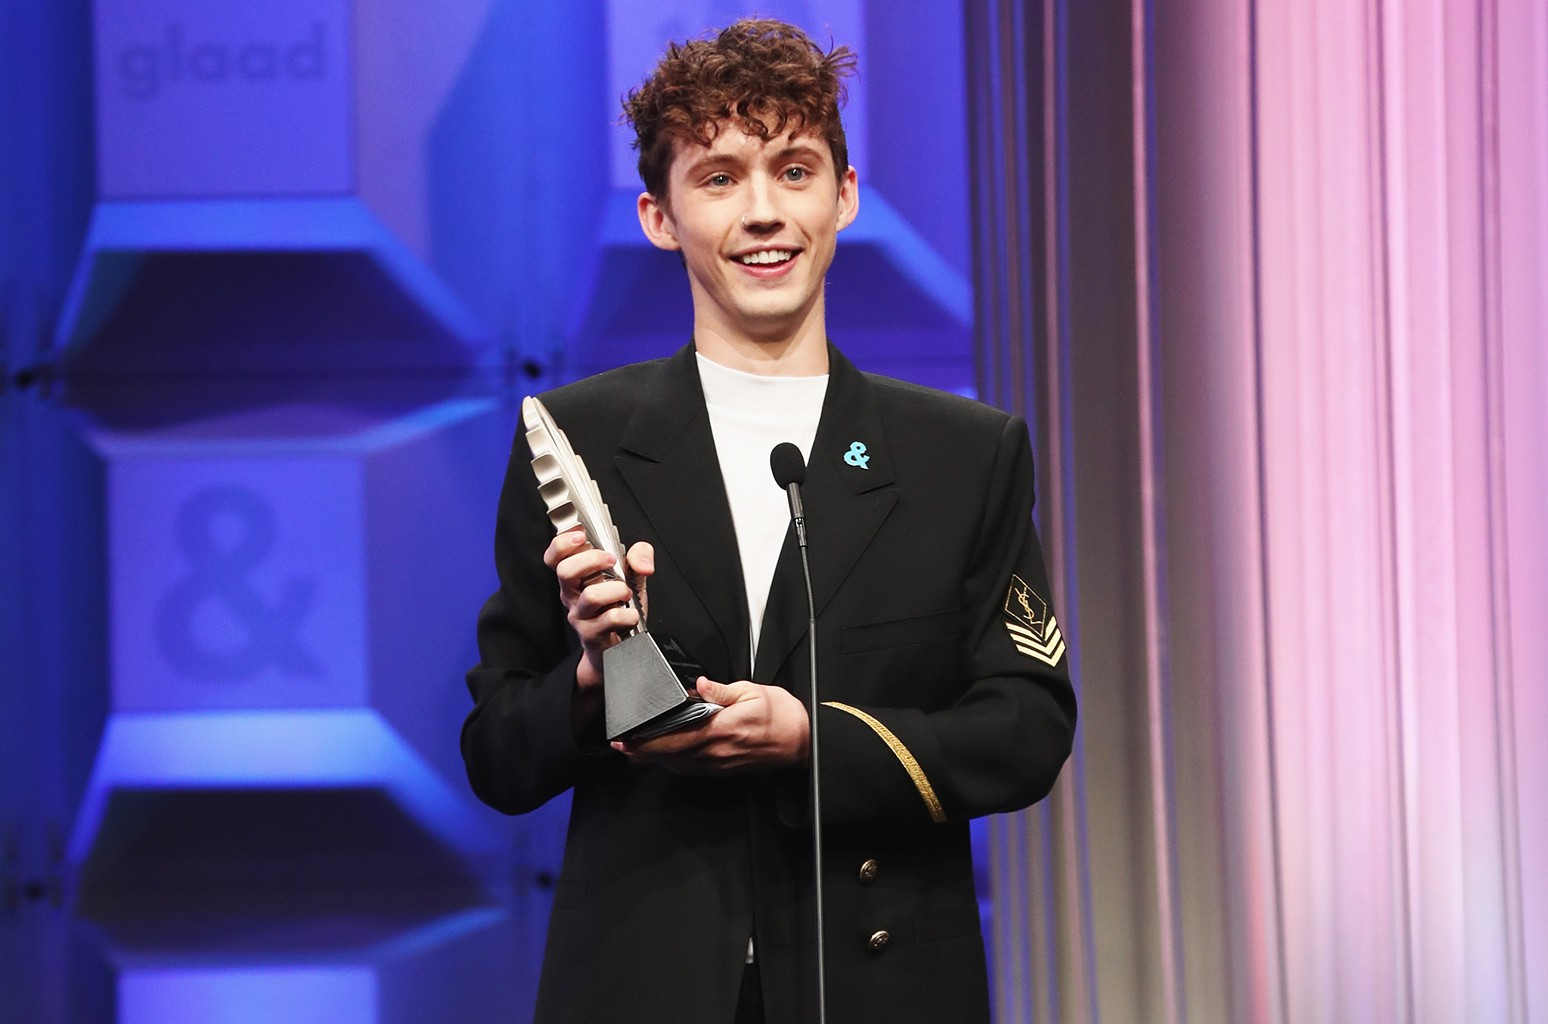 Troye Sivan accepts the Stephen F. Kolzak Award onstage during the 28th Annual GLAAD Media Awards in LA at The Beverly Hilton Hotel on April 1, 2017 in Beverly Hills, Calif.